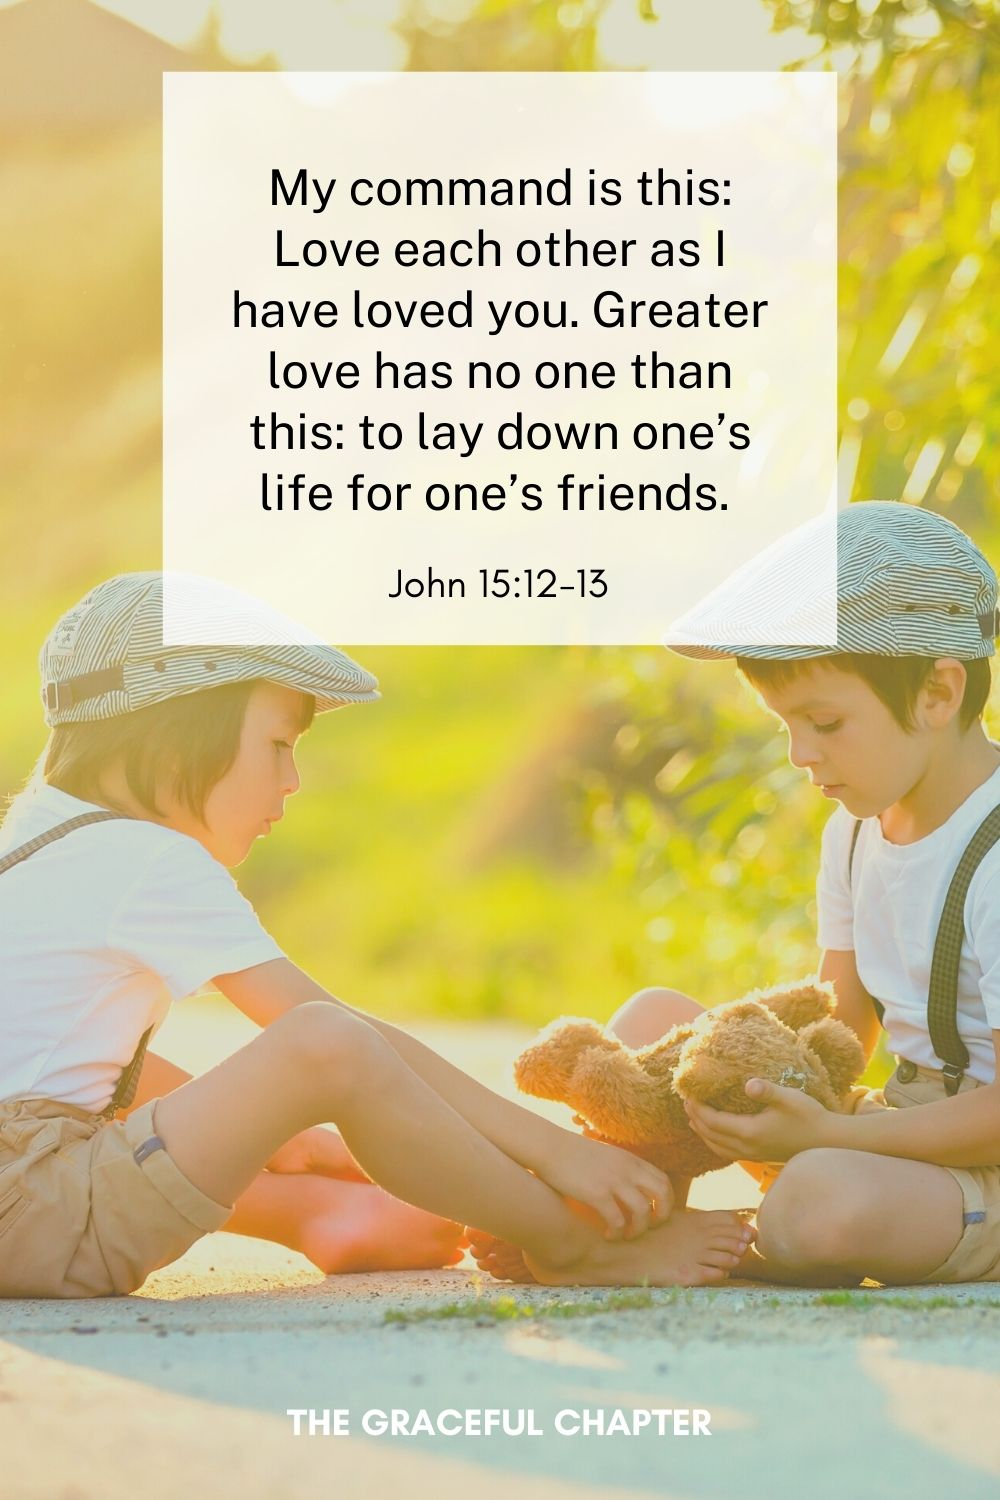 My command is this: Love each other as I have loved you. Greater love has no one than this: to lay down one's life for one's friends.  John 15:12-13